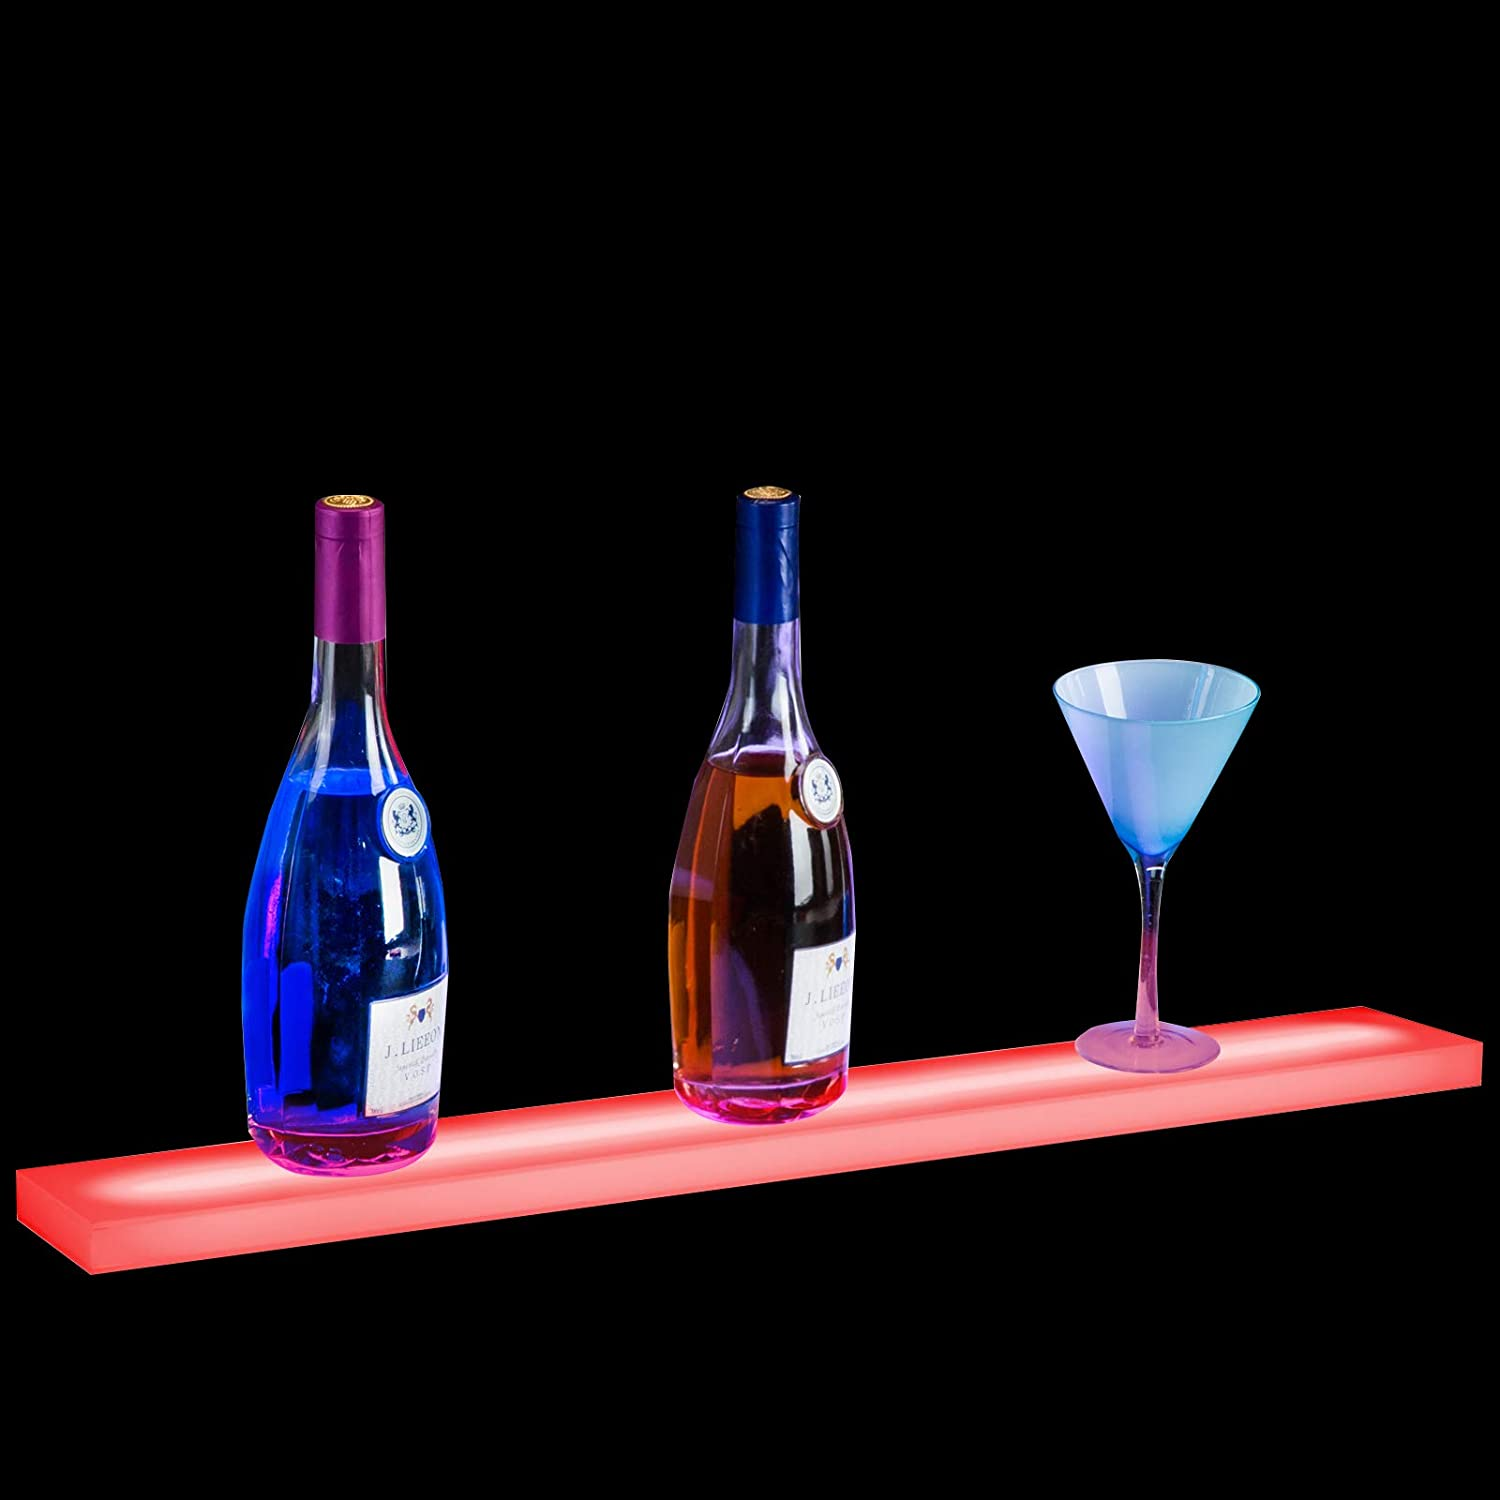 Nurxiovo 20/24/32/36 Inch LED Lighted Liquor Bottle Display Stand Floating Lighting Bar Shelf Illuminated Home and Commercial Bar Wall-Mounted Racks with RF Remote Control